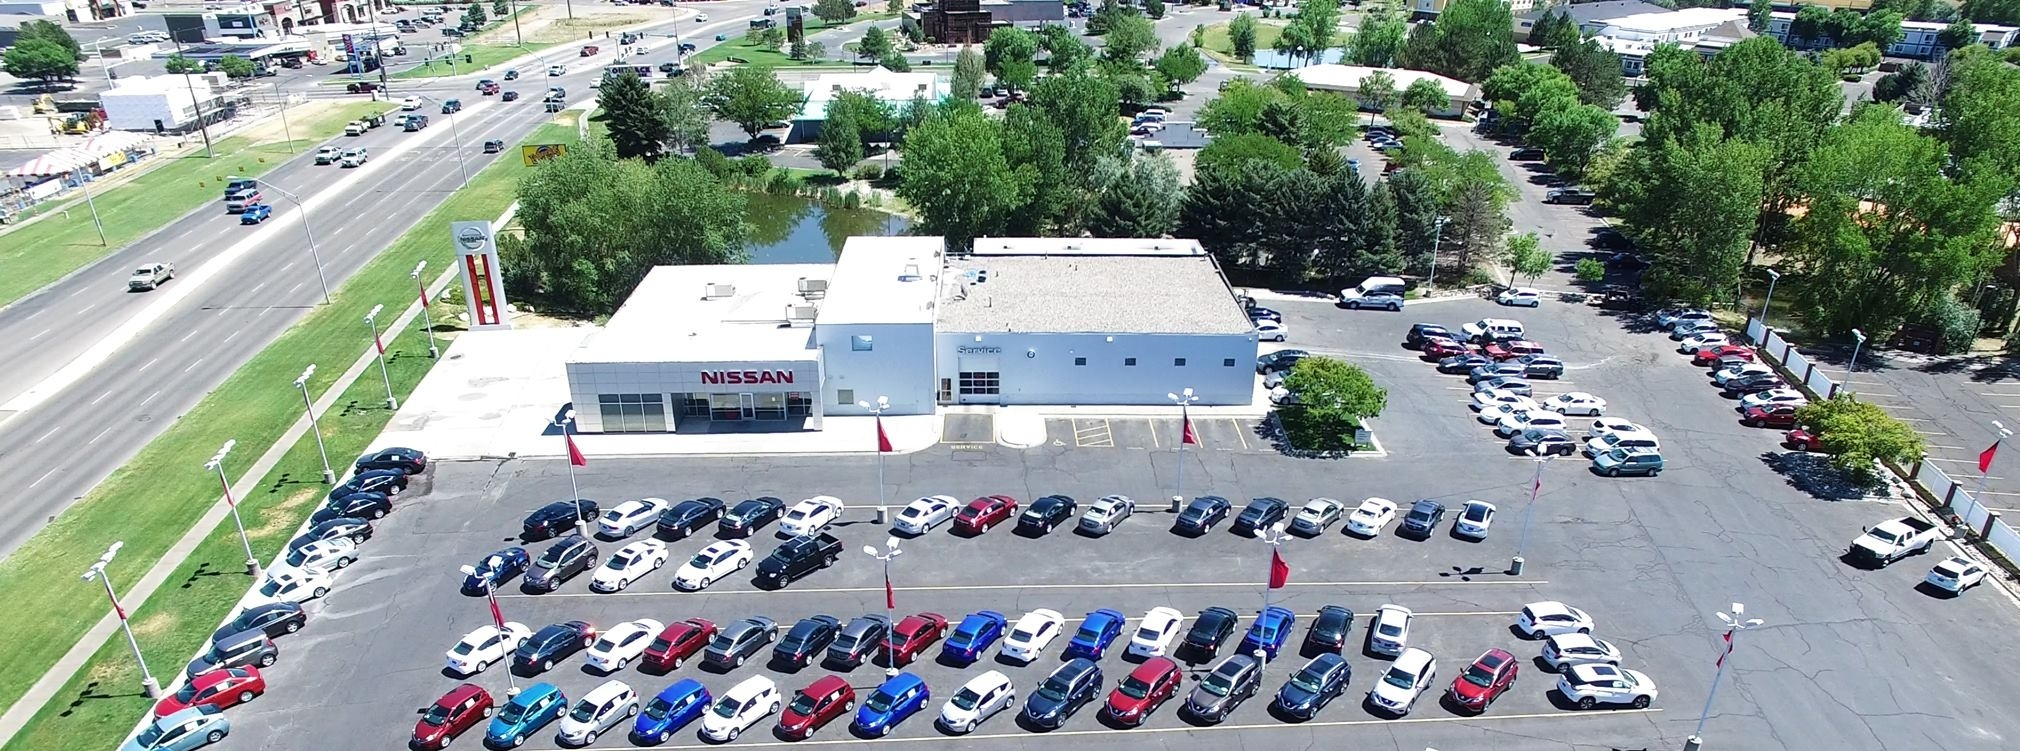 Billings Nissan dealership